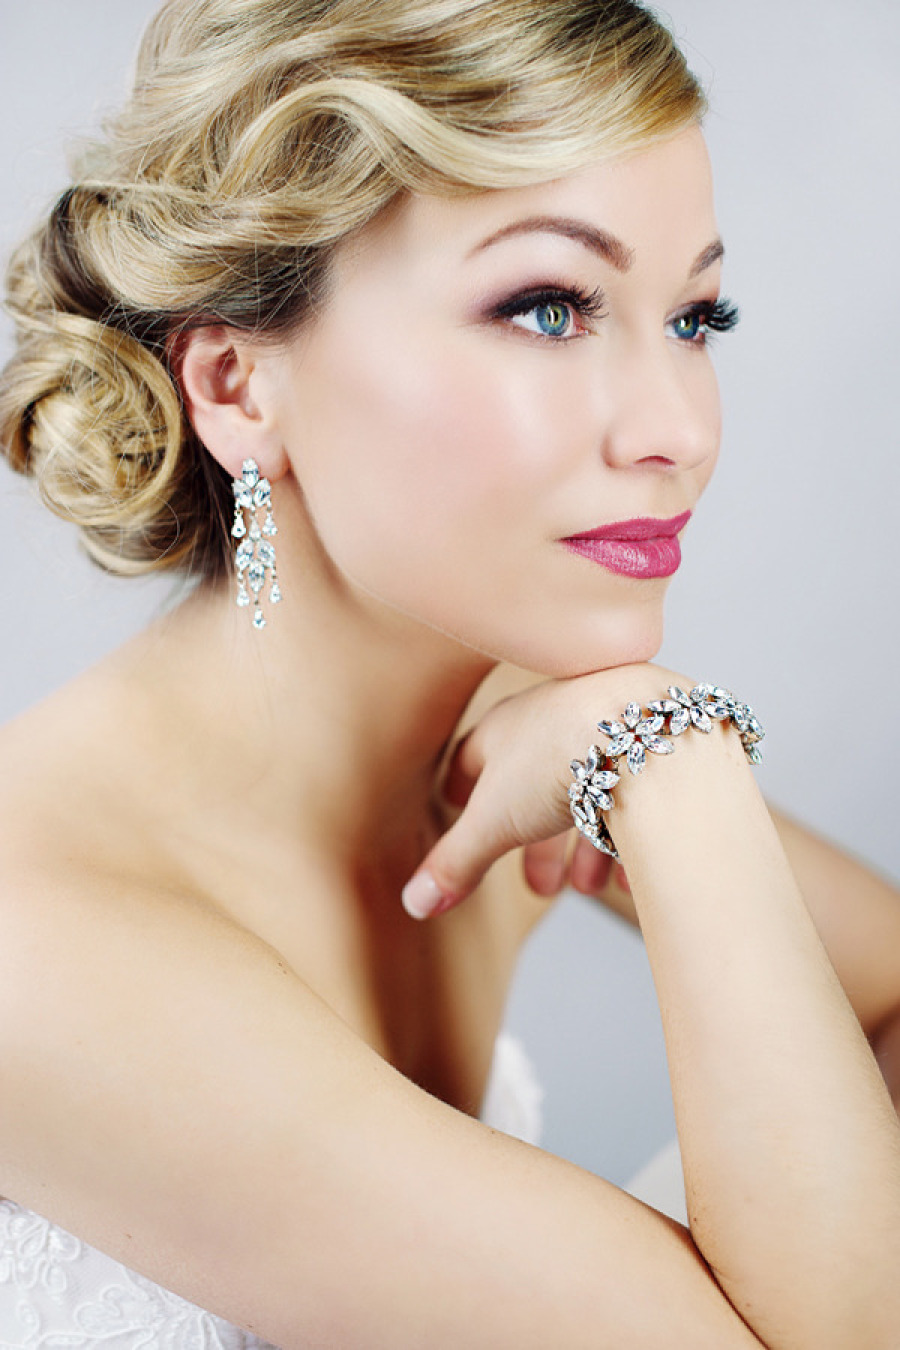 Adored Vintage 12 Vintage Hairstyles To Try For: 18 Vintage Wedding Hairstyles ,Chic Vintage Bridal Hair Curl